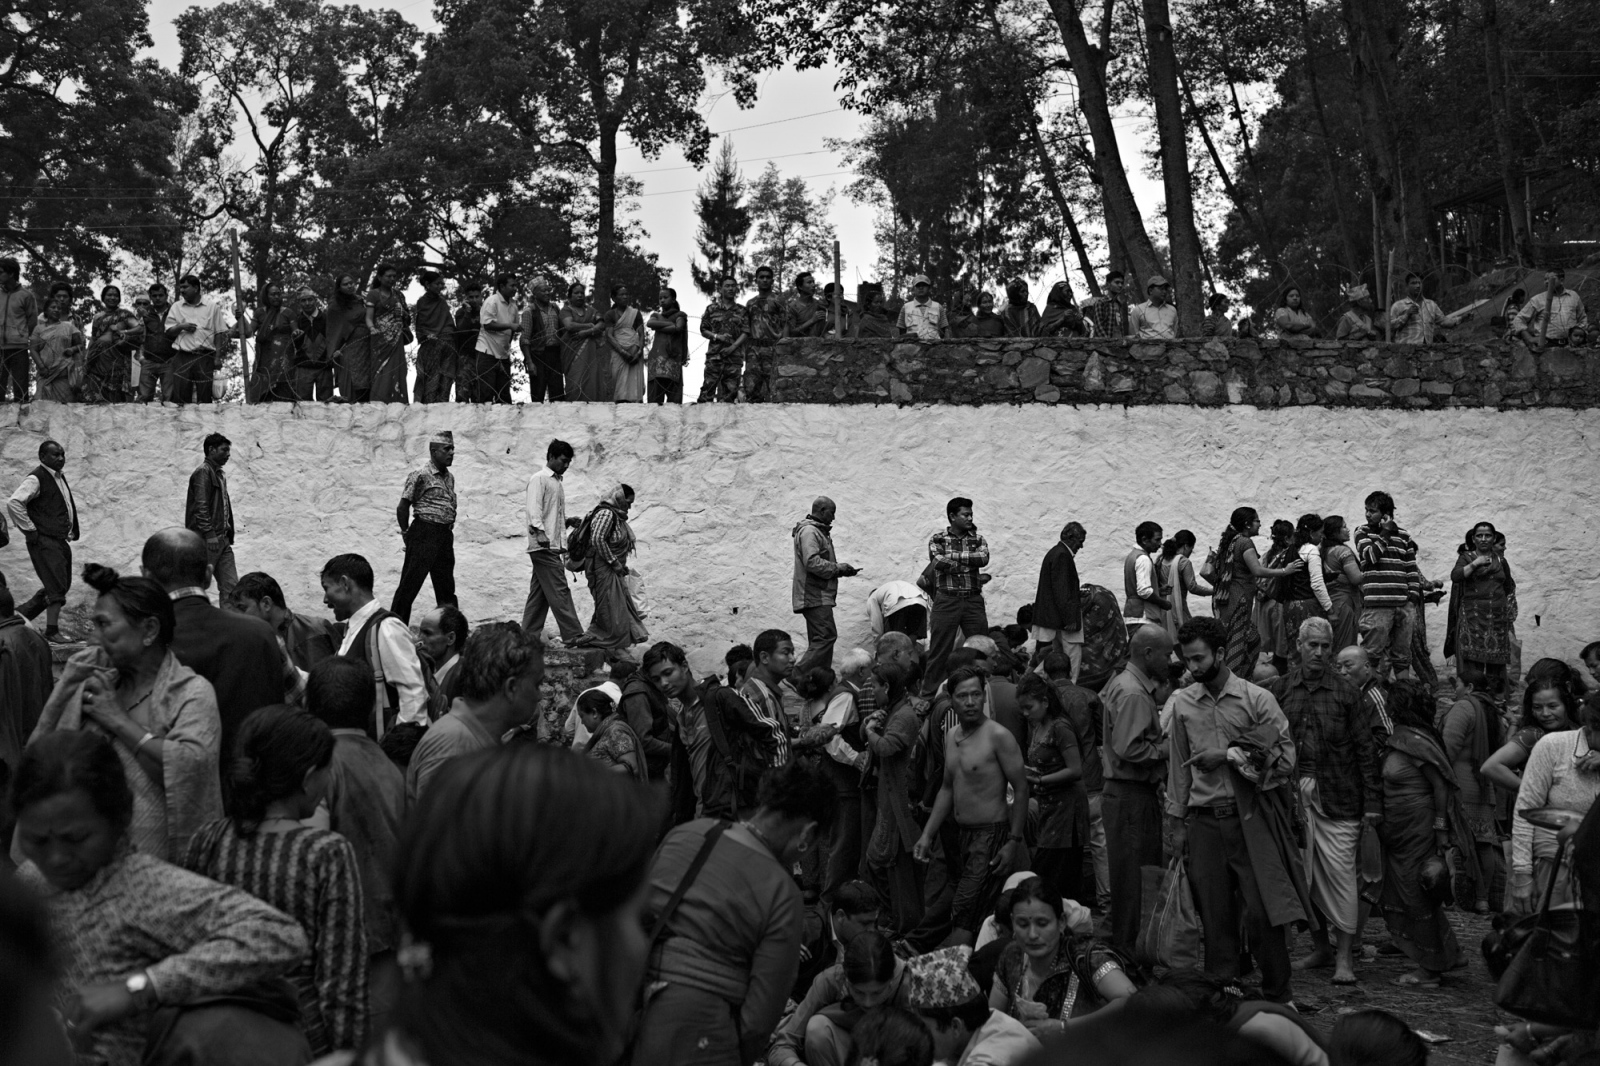 Many people gather at a sacred area on the outskirts of Kathmandu on Mother's Day, to honor their deceased mothers and grandmothers. This is a special gathering only for those whose mothers have died.